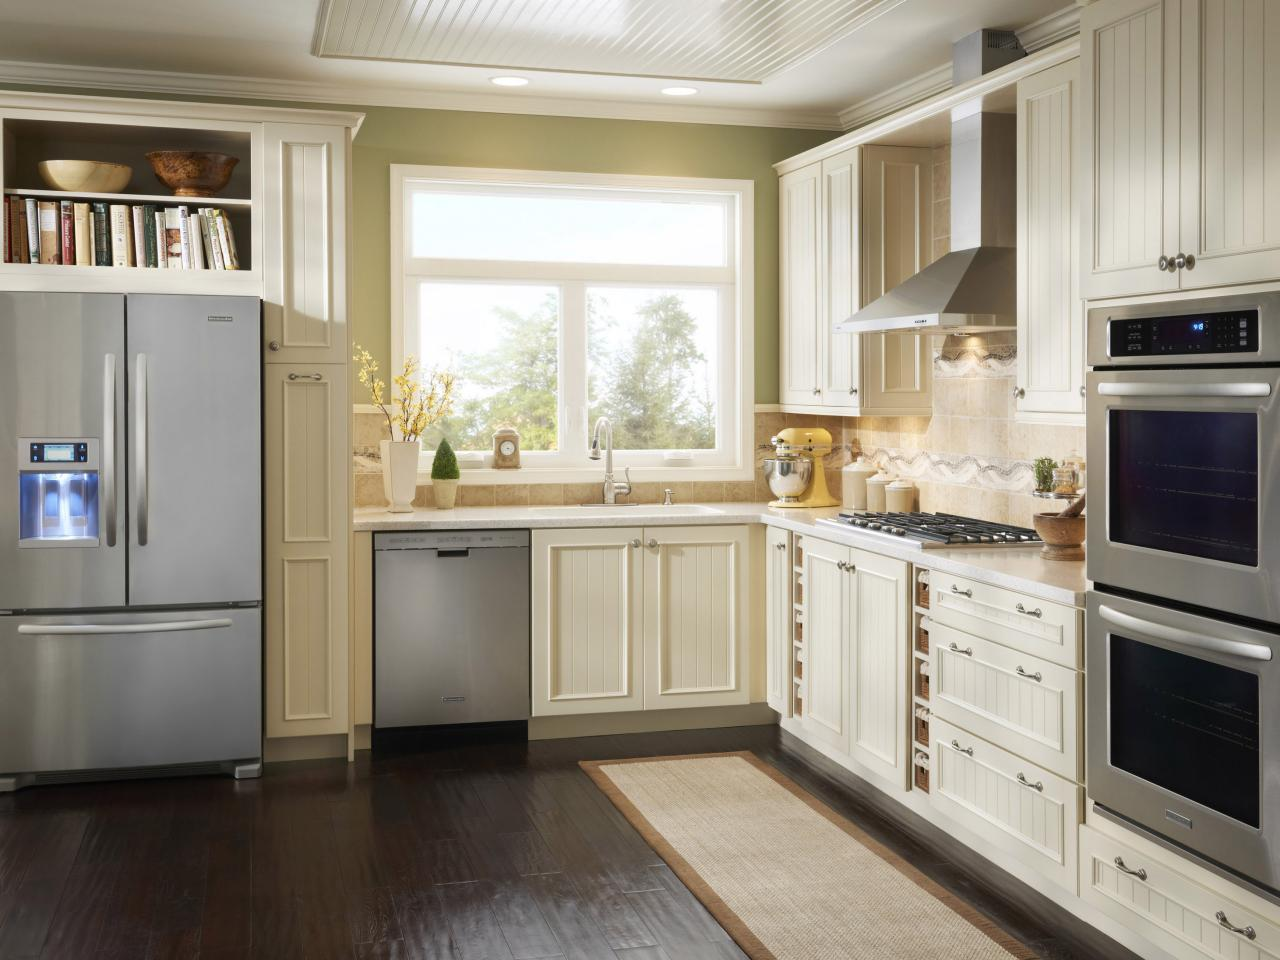 Small Kitchen Ideas White Cabinets Small Kitchen Options Smart Storage And Design Ideas Hgtv